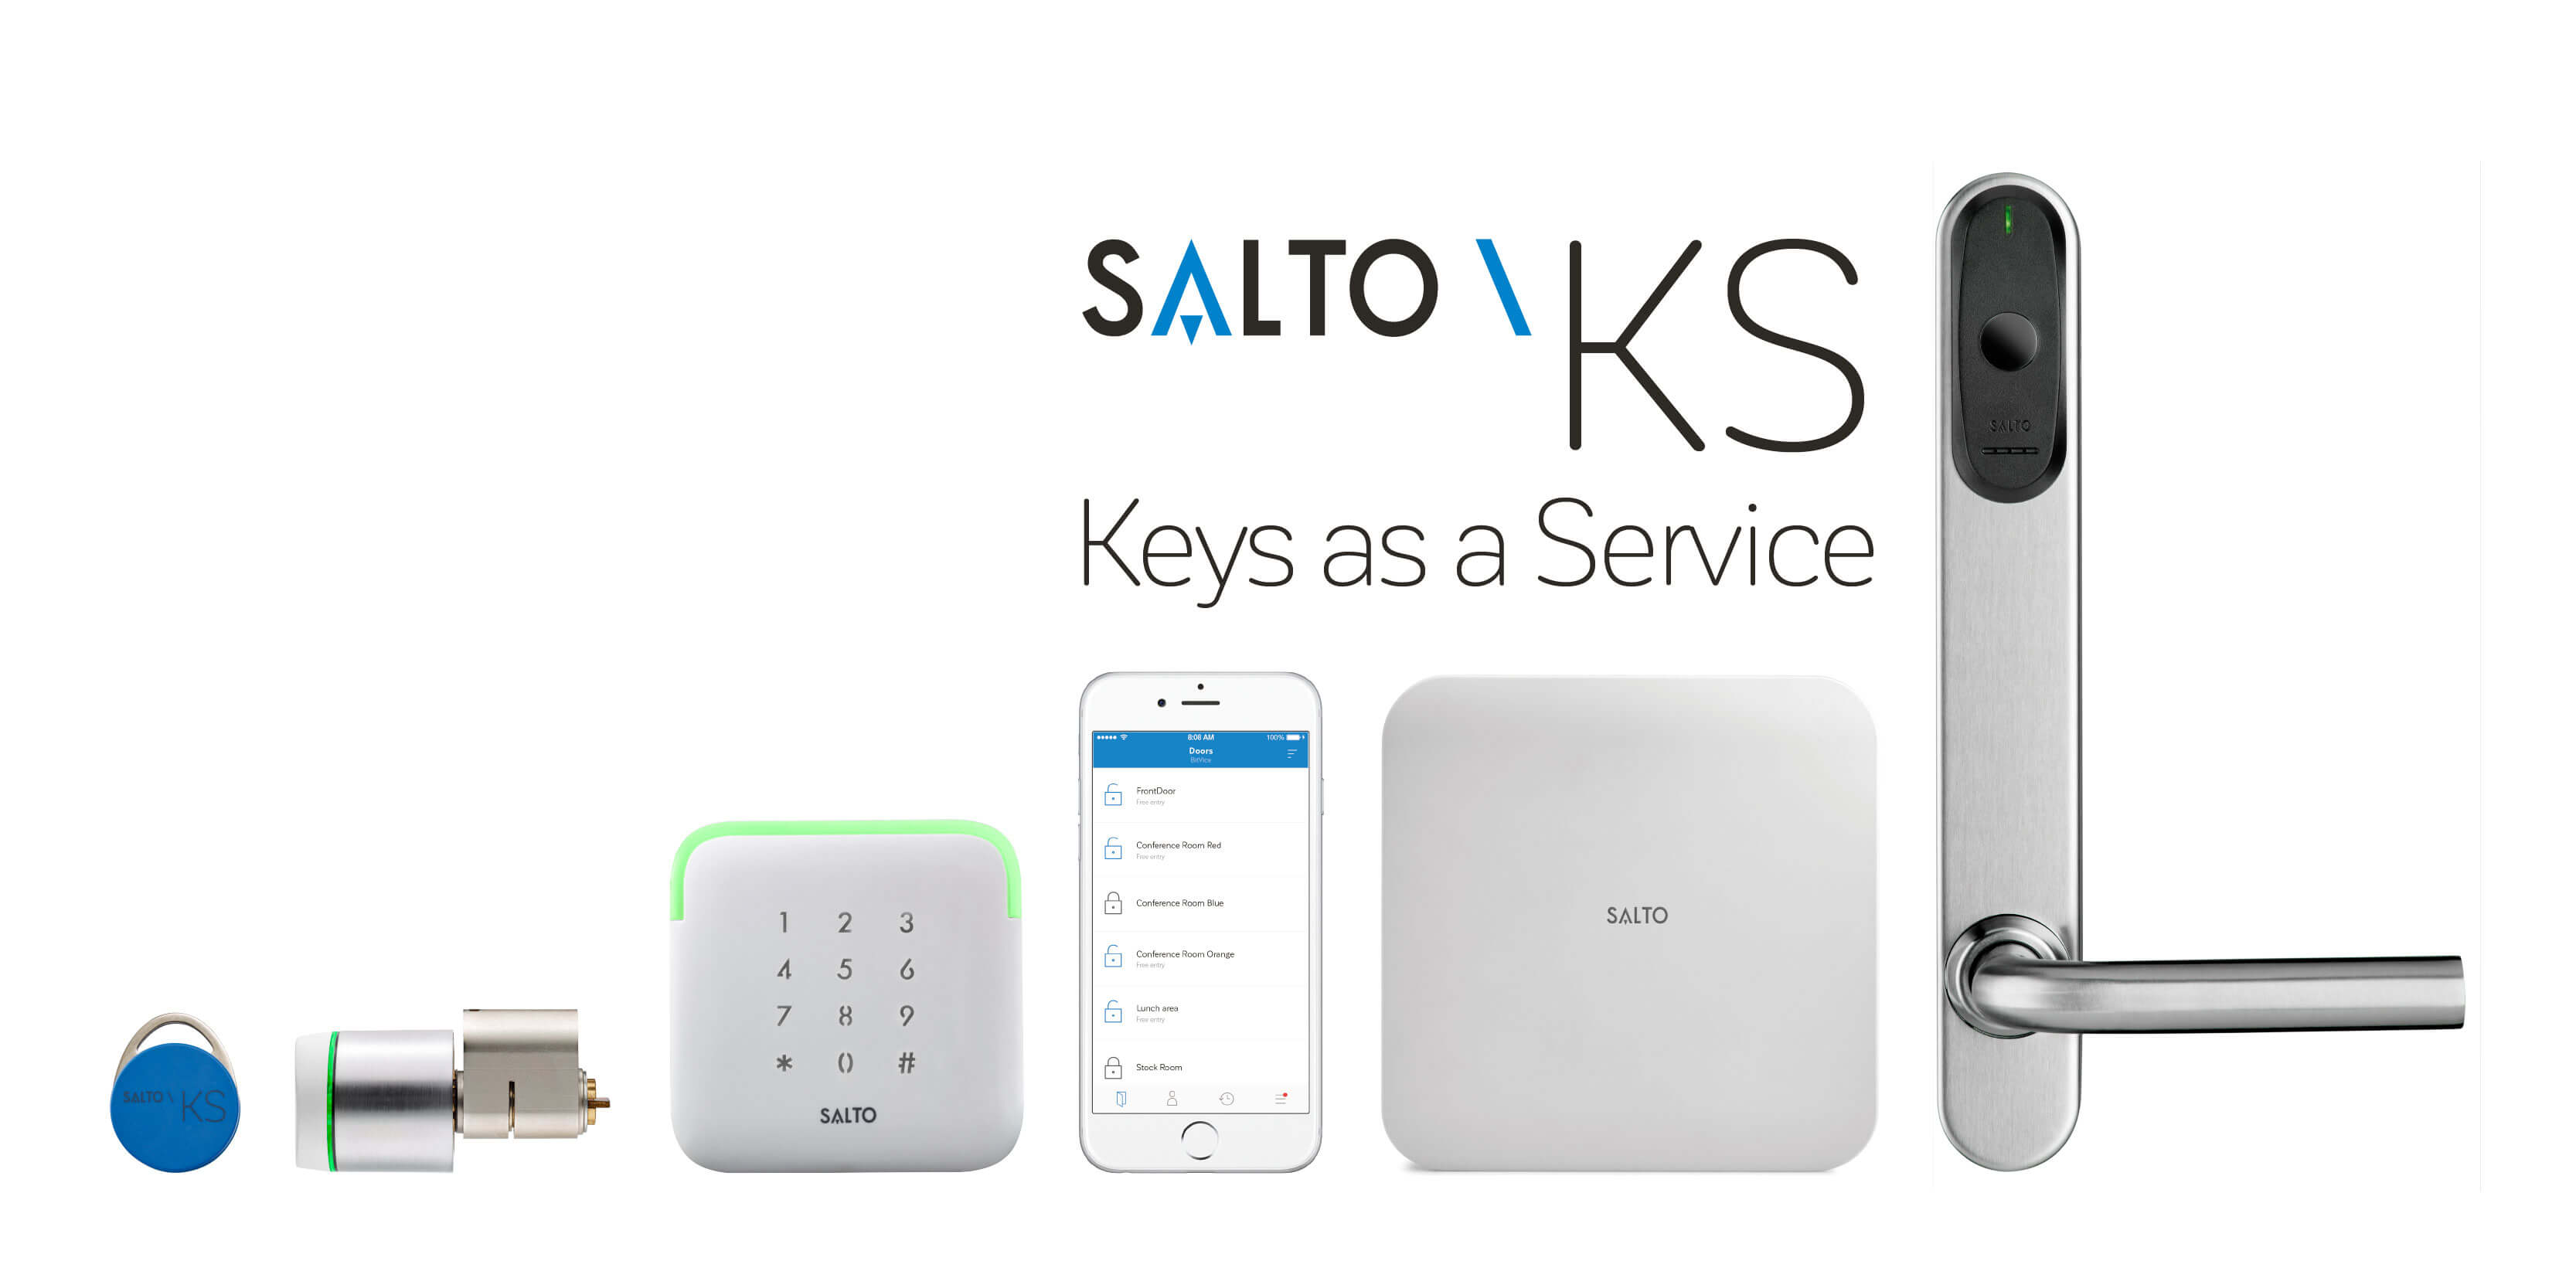 Salto Access Control Systems In Miami FL - keys as a service